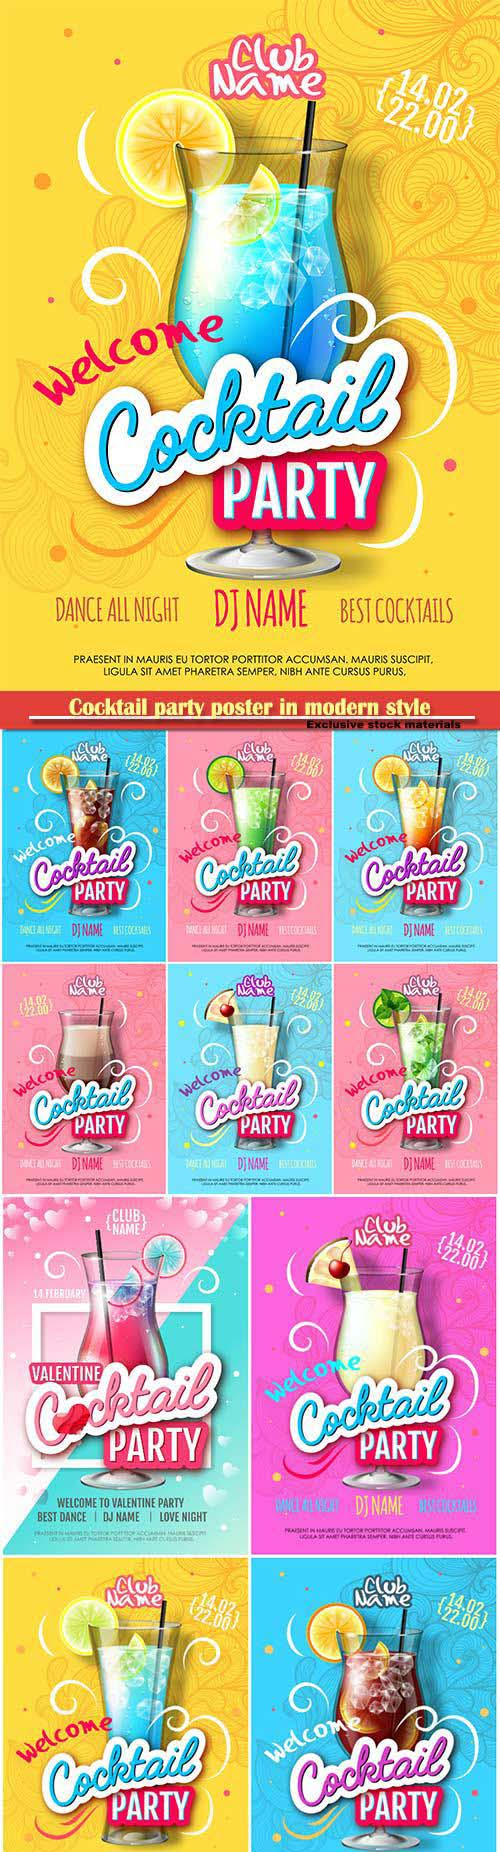 Cocktail party poster in modern style, realistic cocktail vector illustration